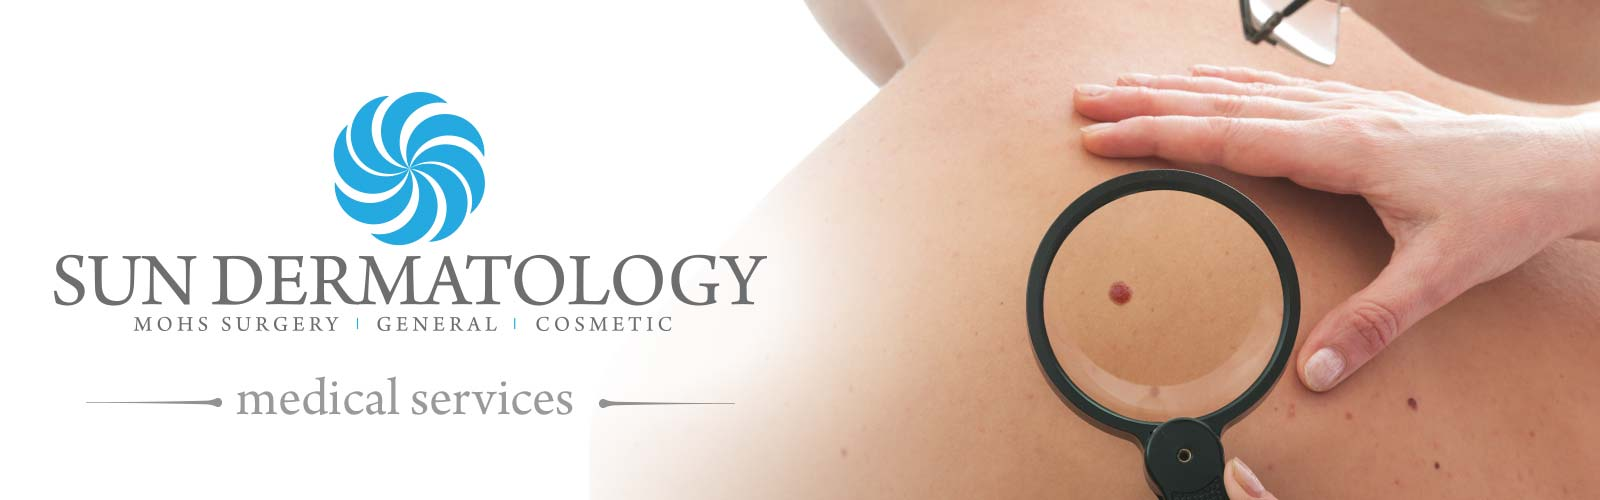 Medical Services and Procedures at Sun Dermatology in Panama City, Florida